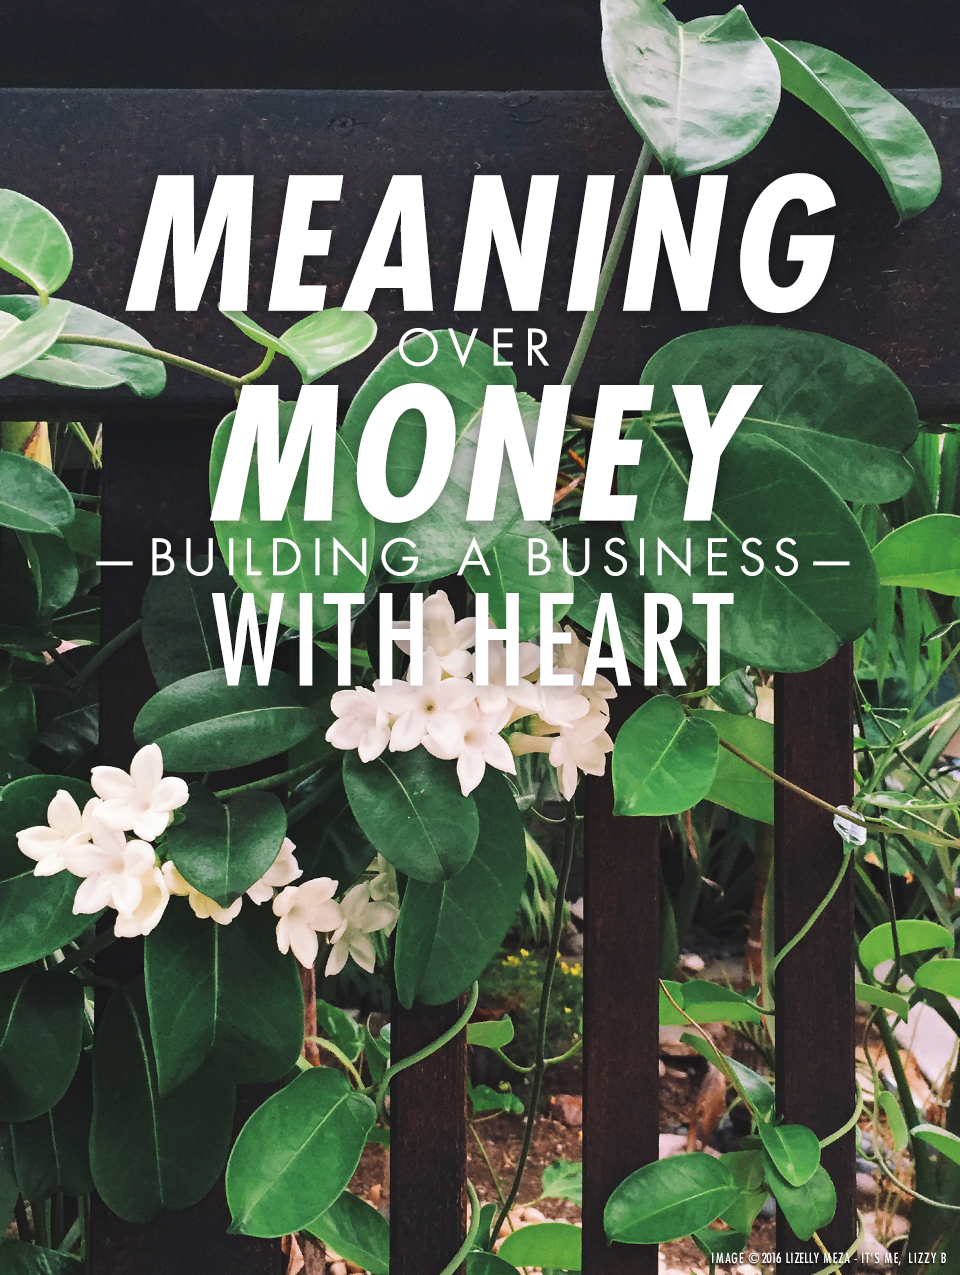 Meaning Over Money—Building A Business with Heart // It's Me, Lizzy B - Musings on Life, Business, & The Pursuit of Everyday Joy // Personal blog of Lizelly Meza from Lizzy B Loves